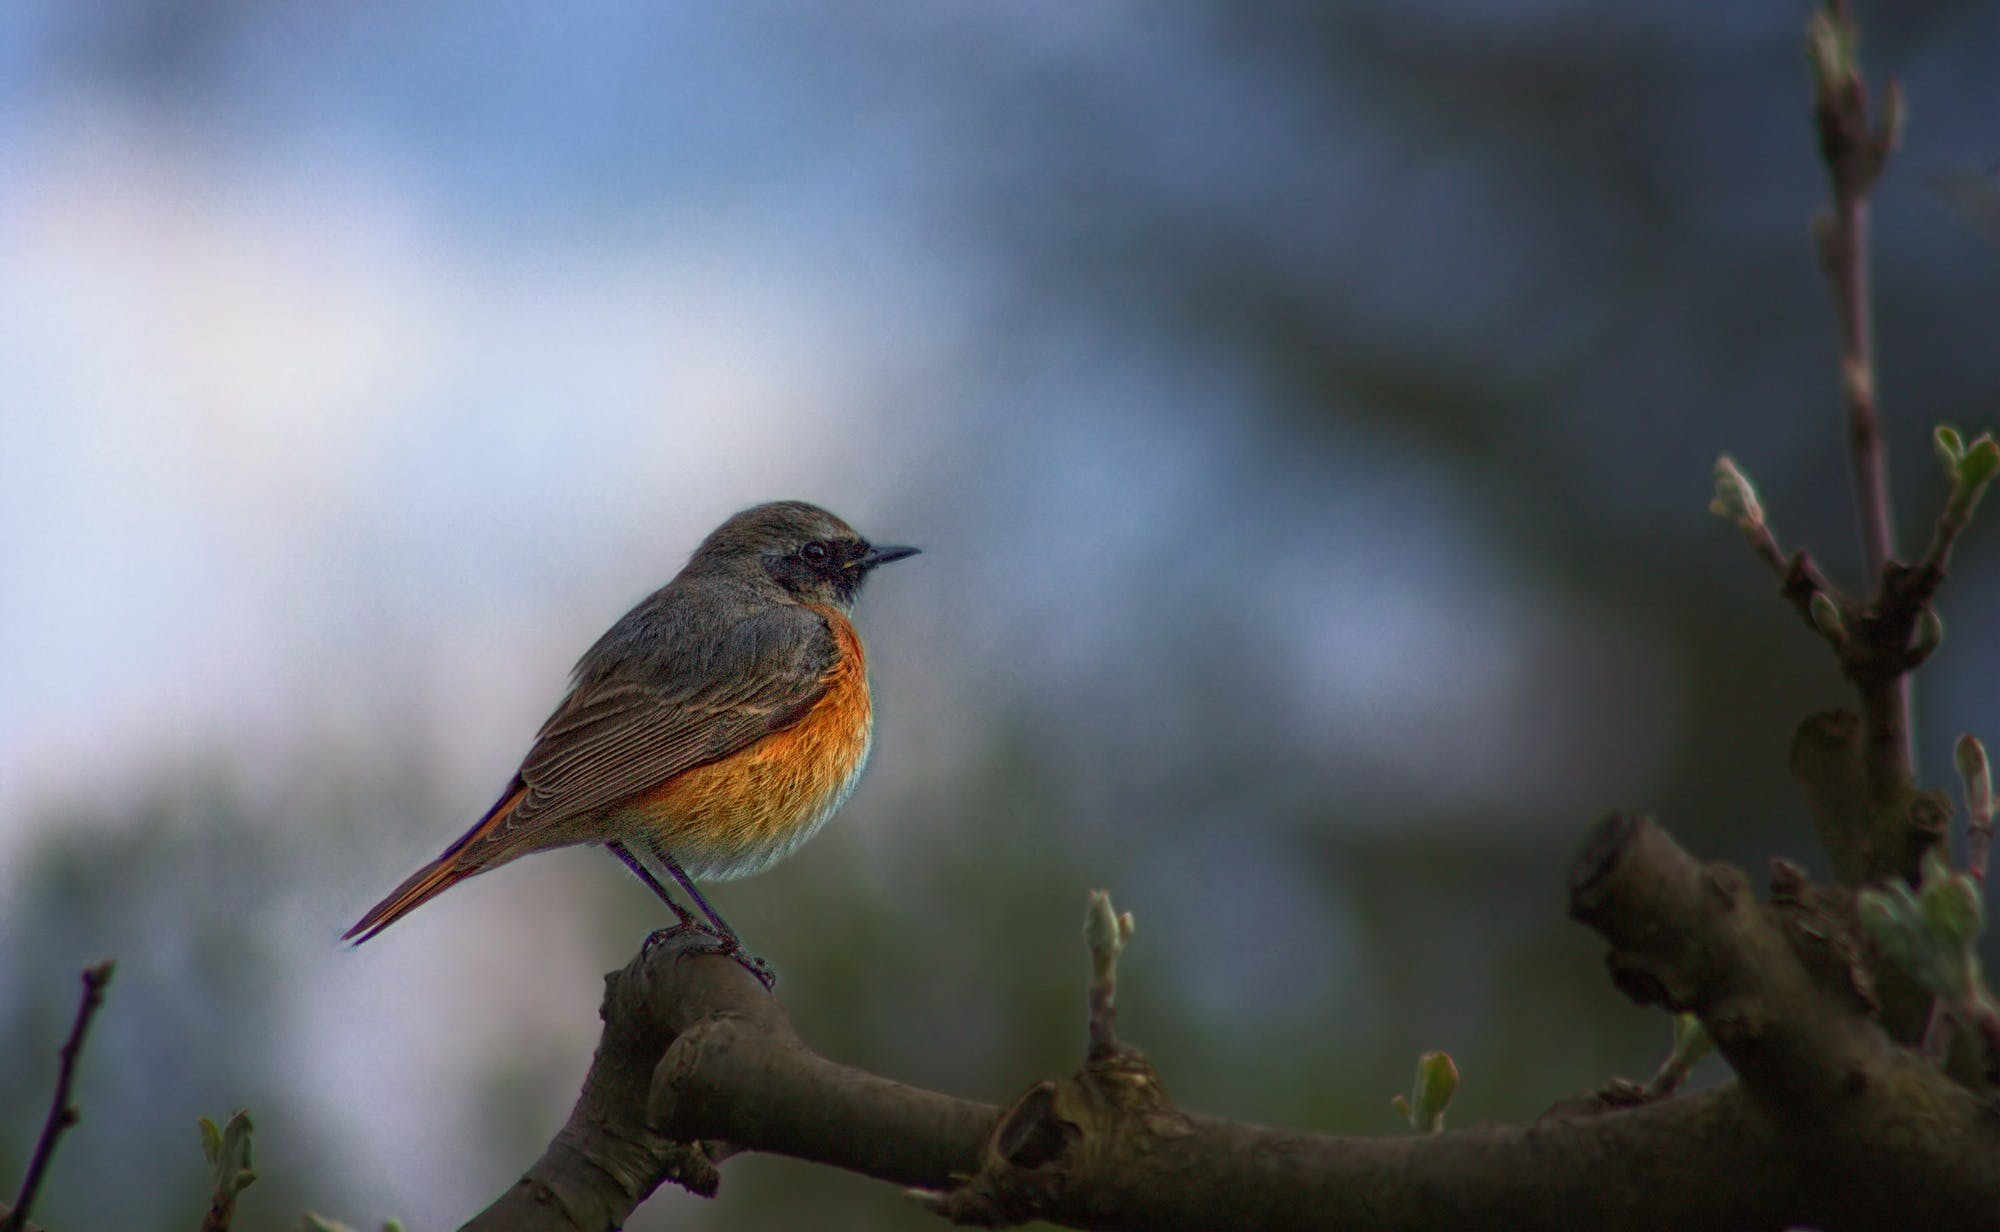 Free stock photo of nature, bird, common redstart, phoenicurus phoenicurus